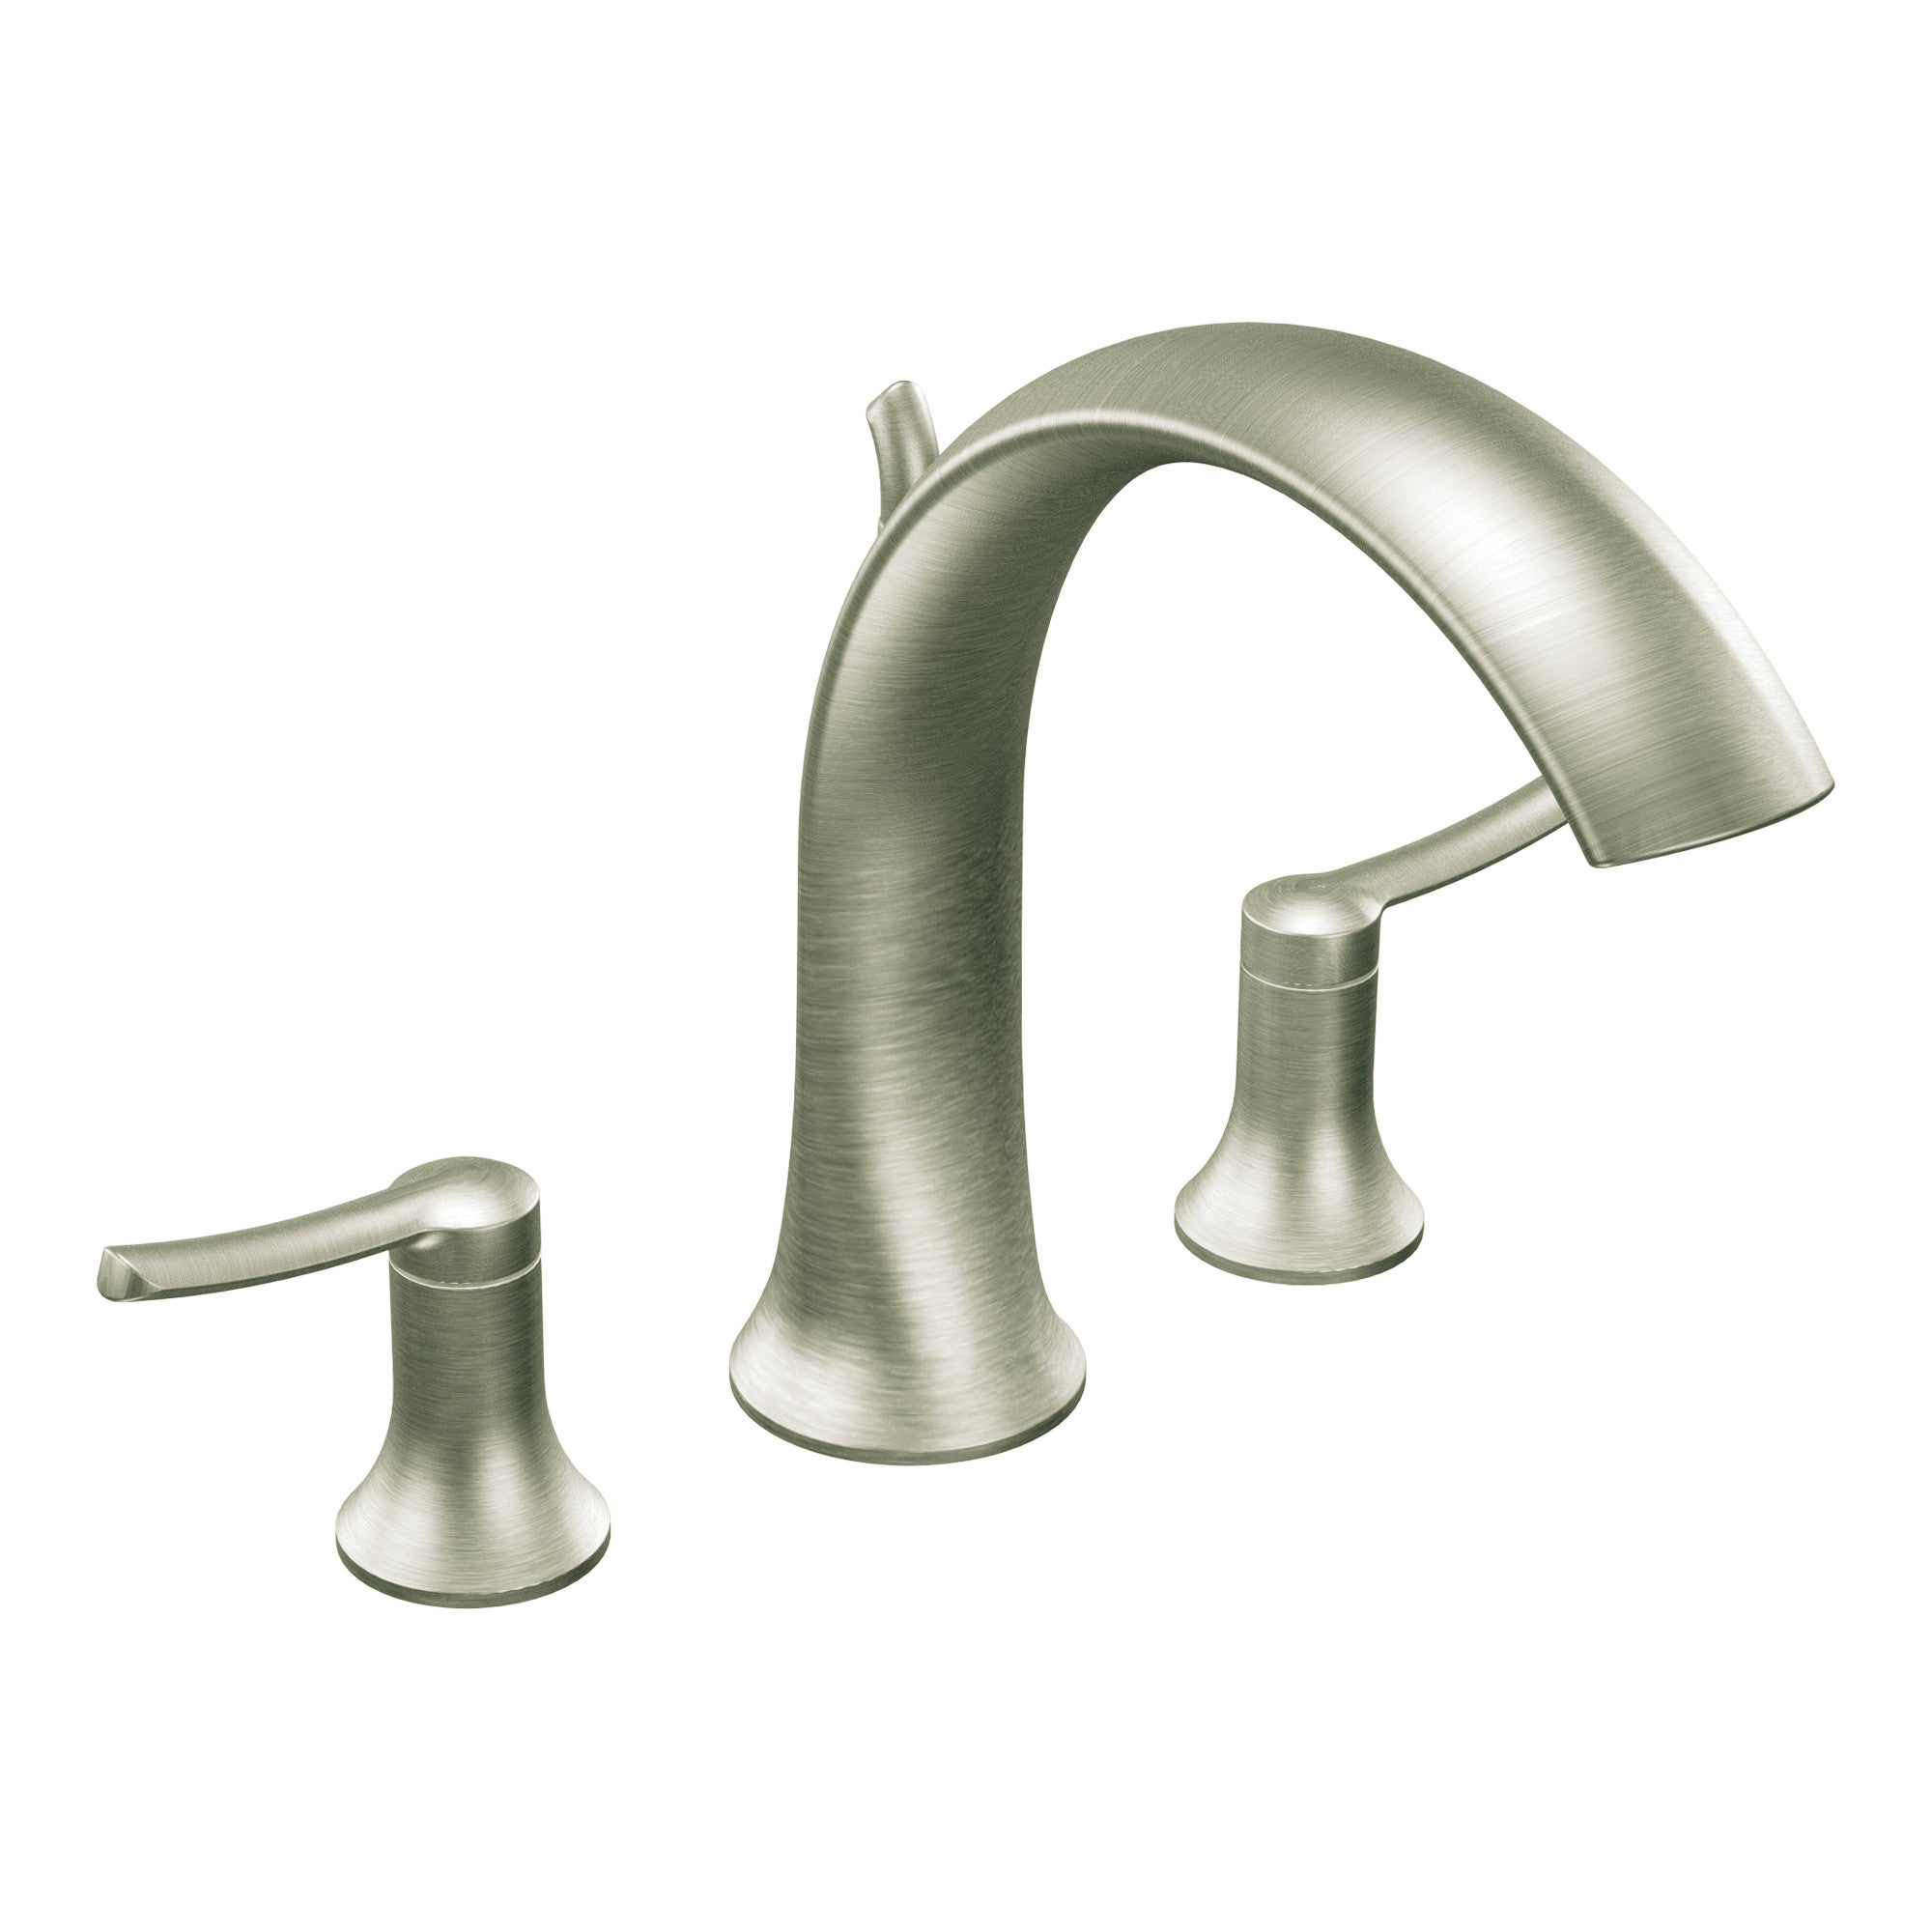 Tub Fixtures : Tub & Shower Faucets Bathroom Faucets - Overstock.com - The Best ...